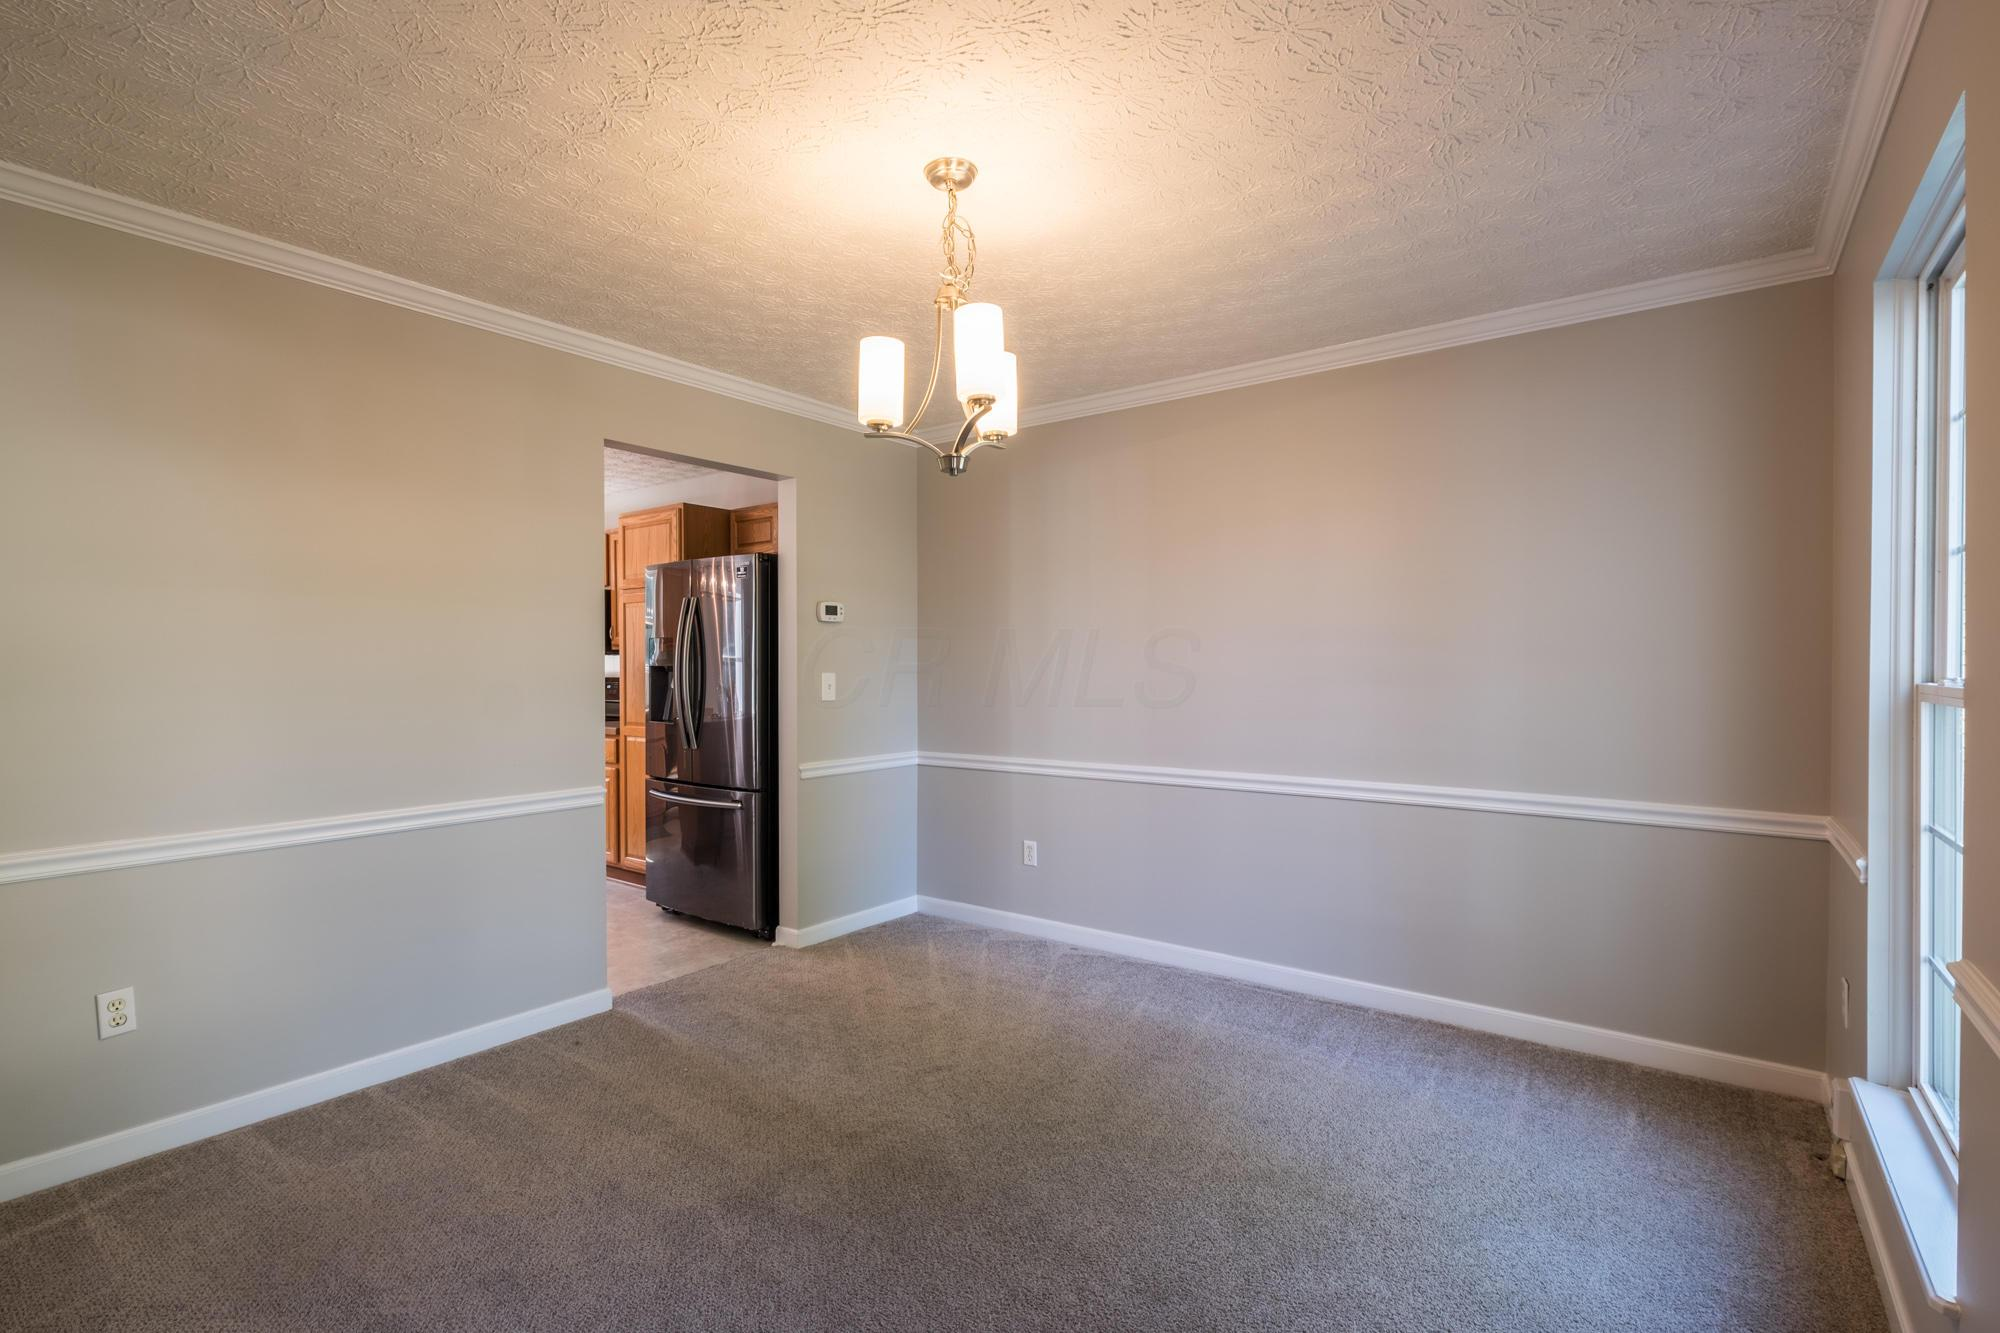 7998 Lazelle Woods Drive, Westerville, Ohio 43081, 4 Bedrooms Bedrooms, ,3 BathroomsBathrooms,Residential,For Sale,Lazelle Woods,220020314